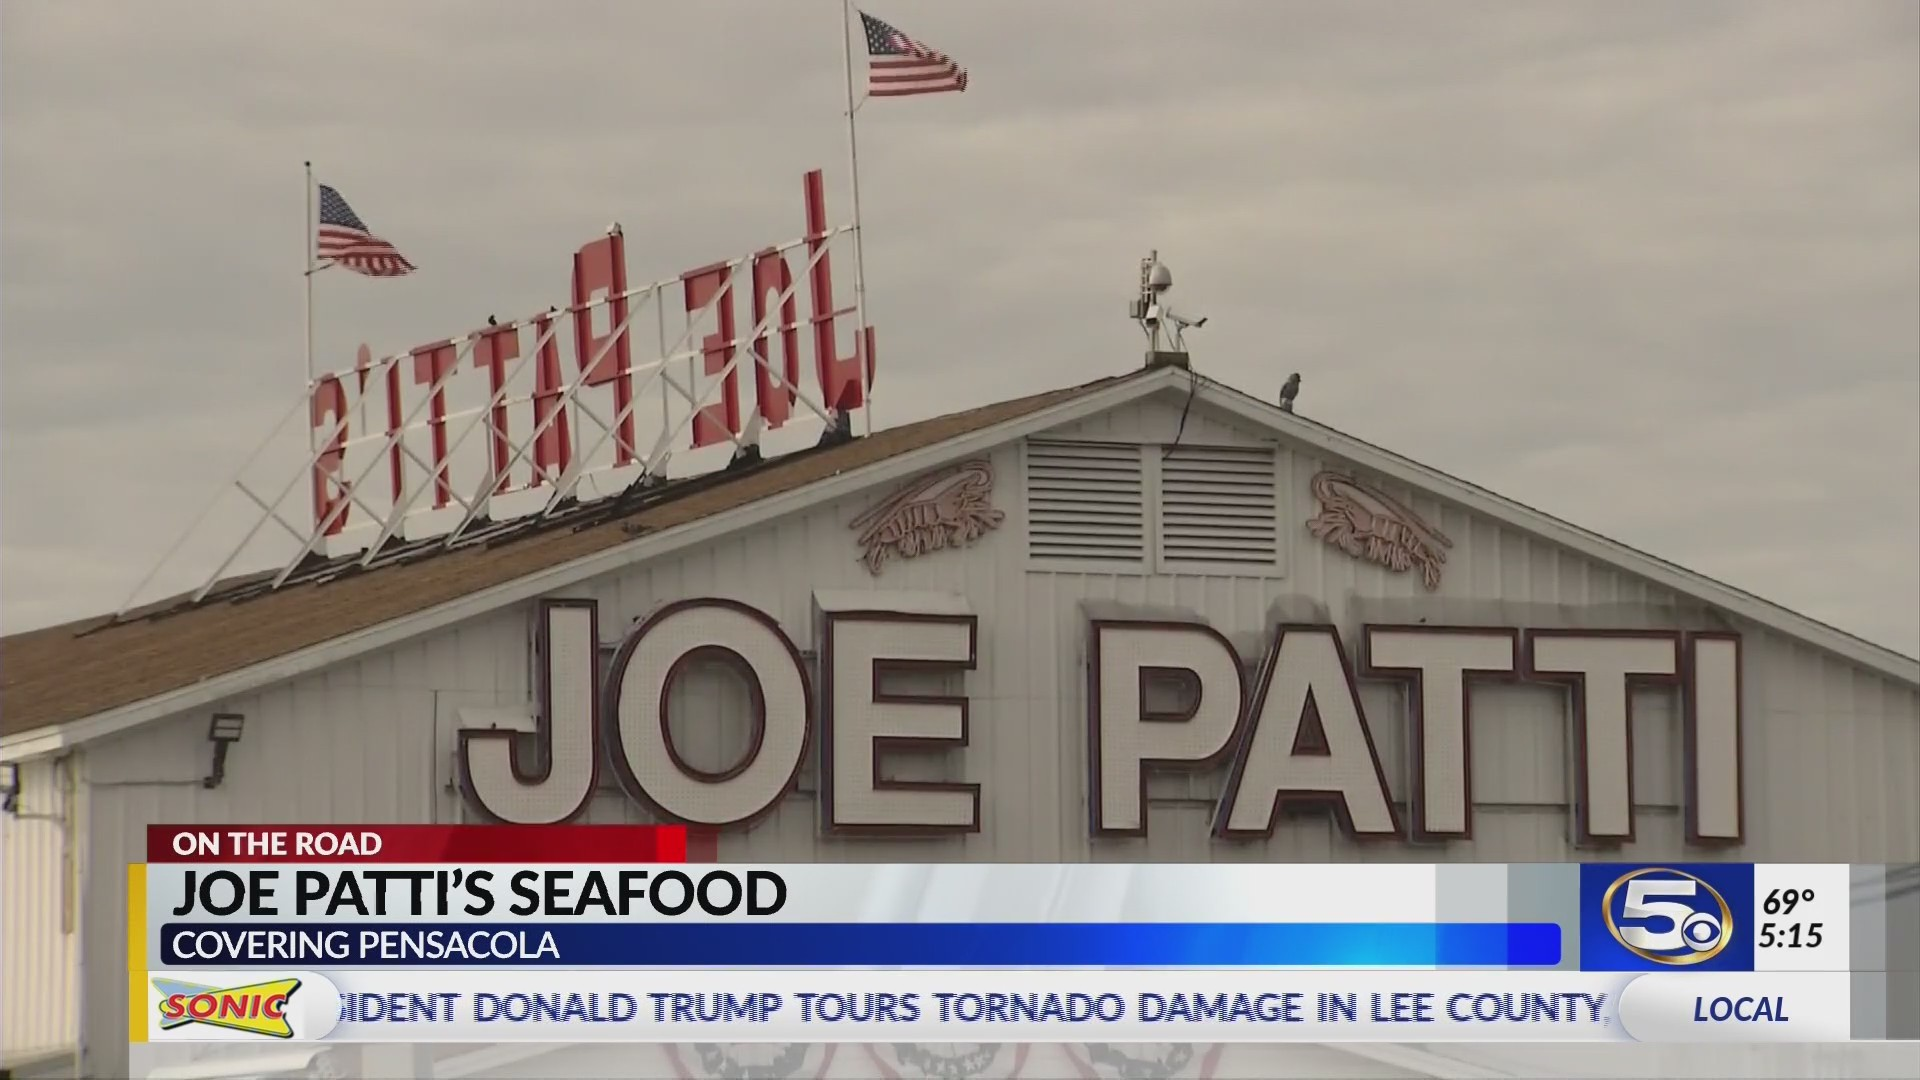 VIDEO: Drexel On The Road: Joe Patti's Seafood, where fish meet fun